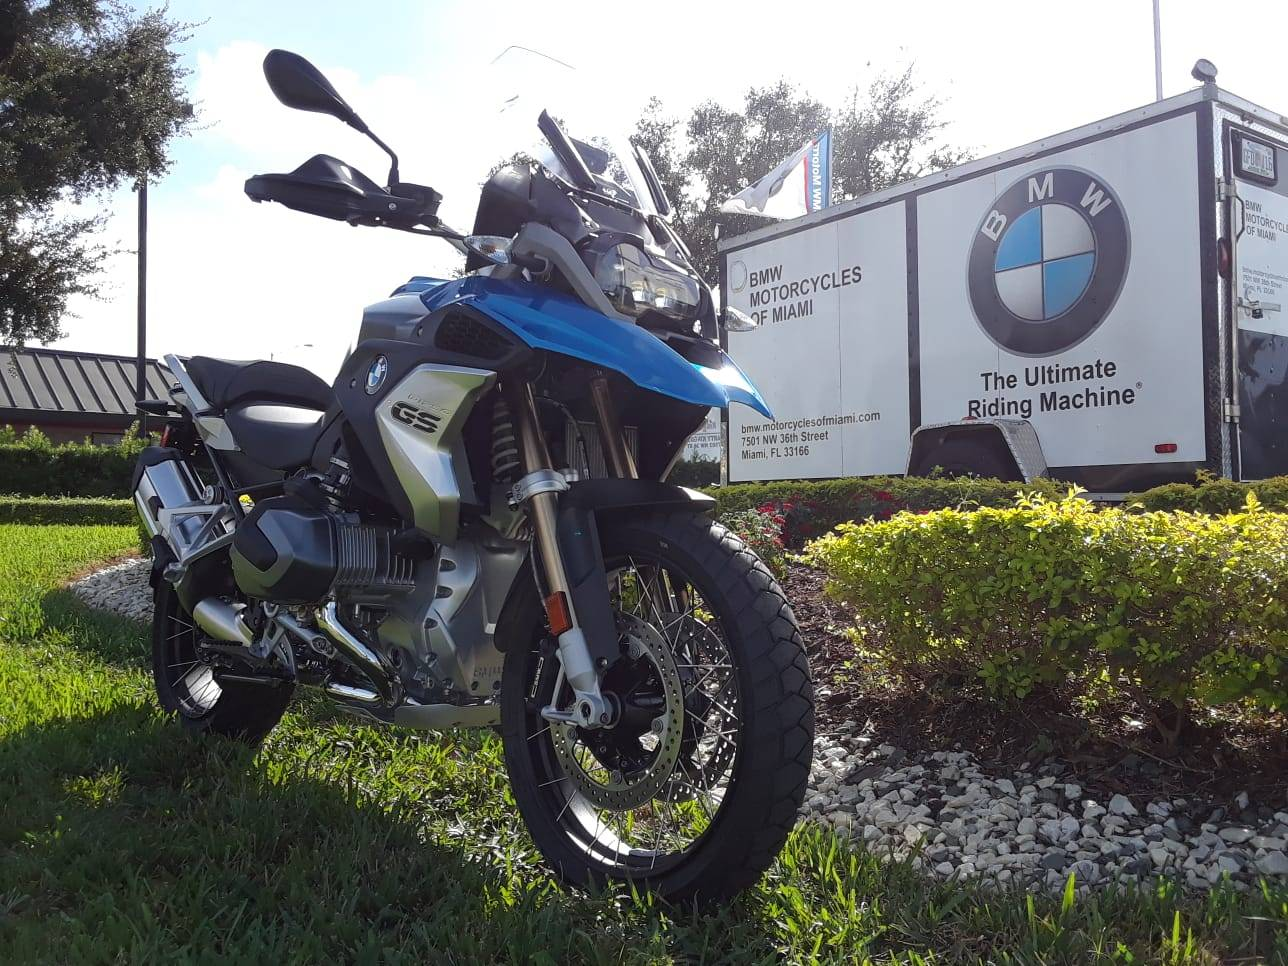 New 2019 BMW R 1250 GS for sale, New BMW R 1250GS, BMW R1250GS for sale, 1250GS, R1250GS, BMW Motorcycles of Miami, Motorcycles of Miami. Motorcycles Miami - Photo 14